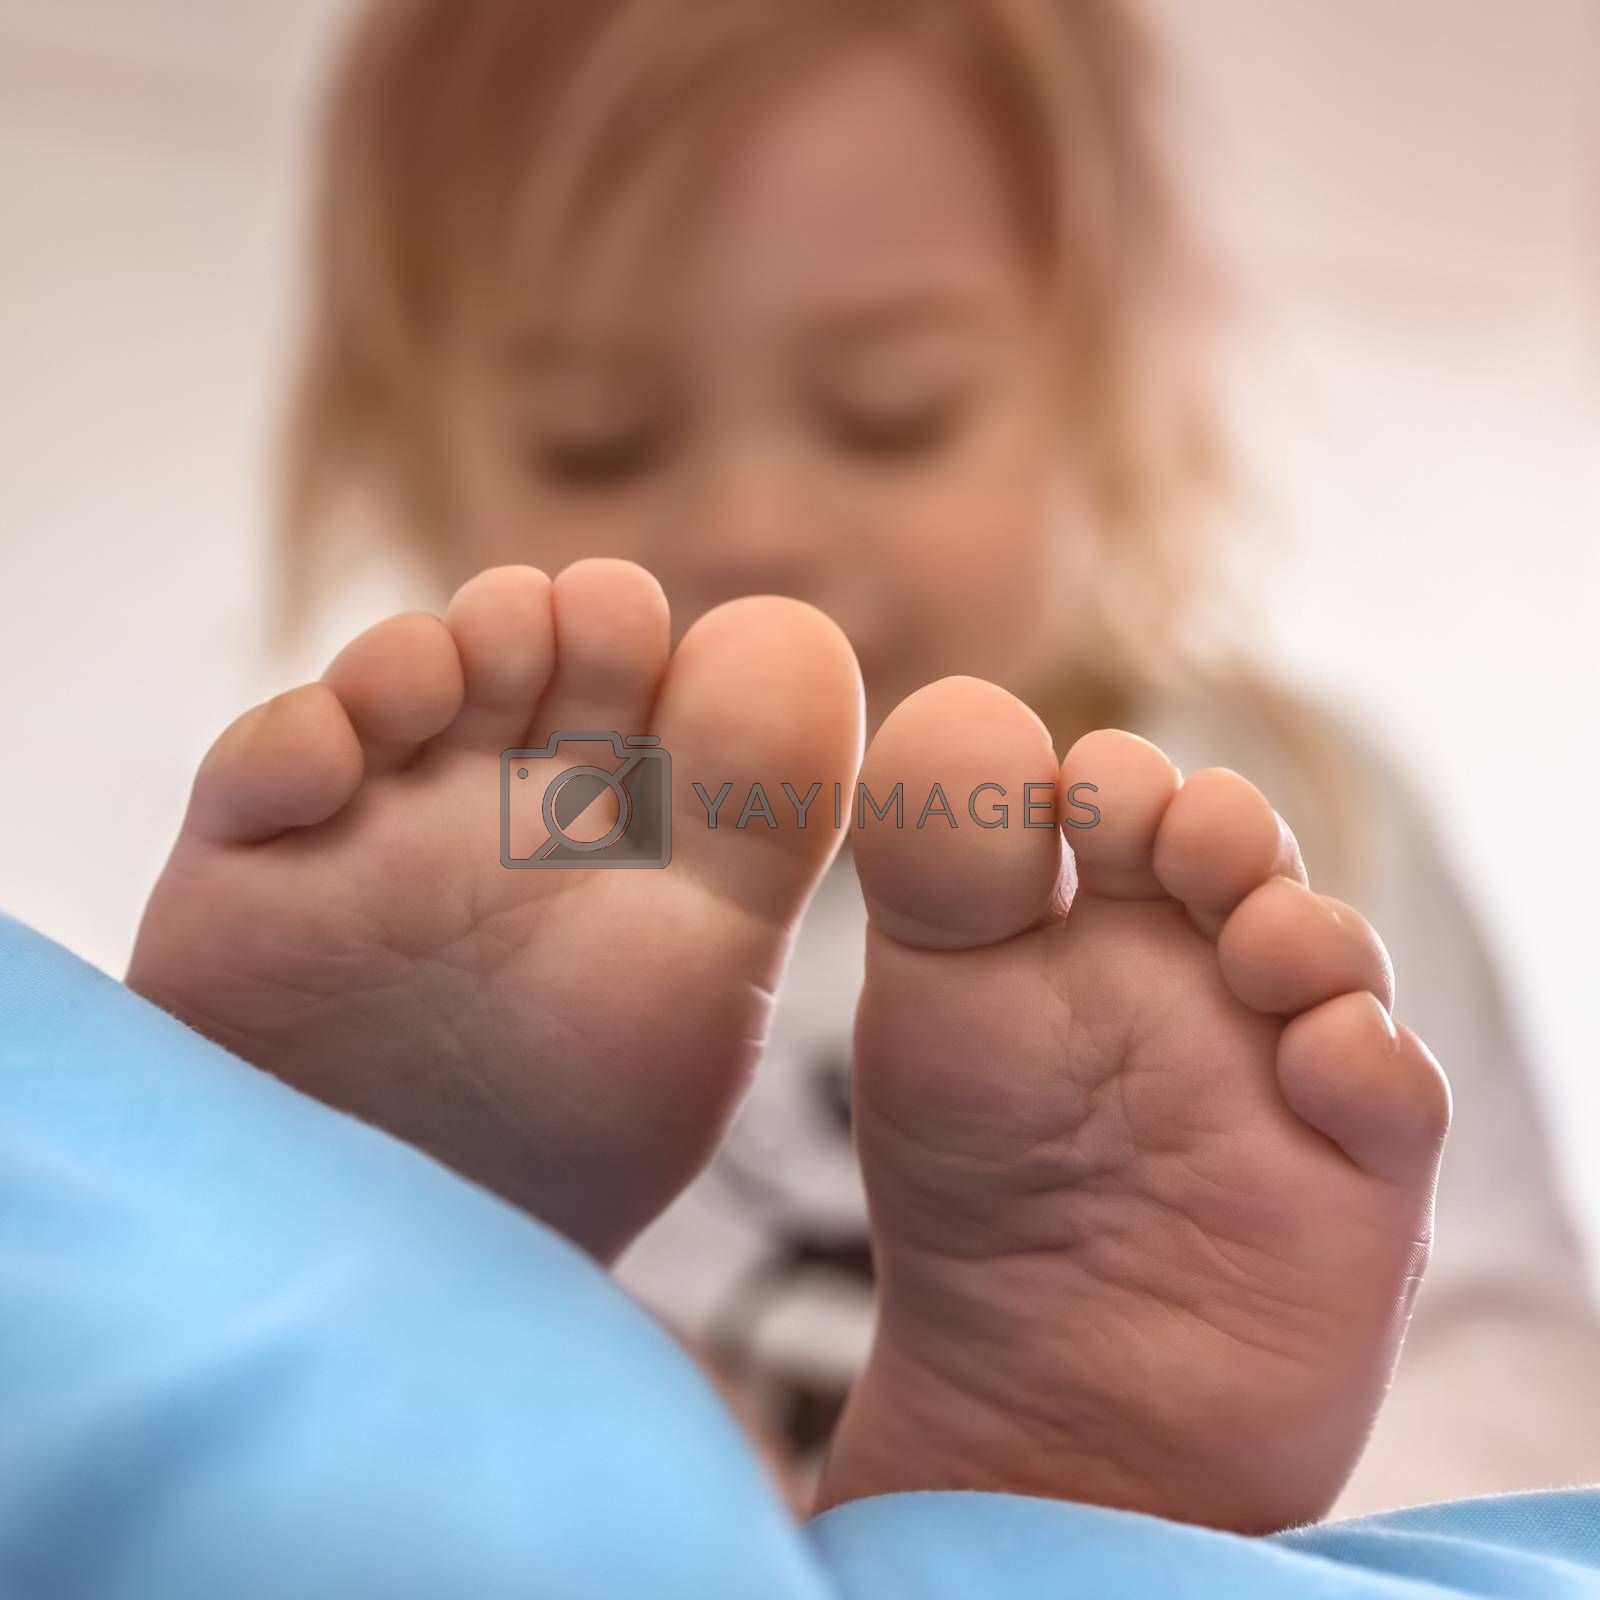 Sweet Child in the Bed. Baby Waking Up in the Morning. Selective Focus Portrait of a Toddler with Bare Feet in the Foreground. Happy Healthy Childhood.